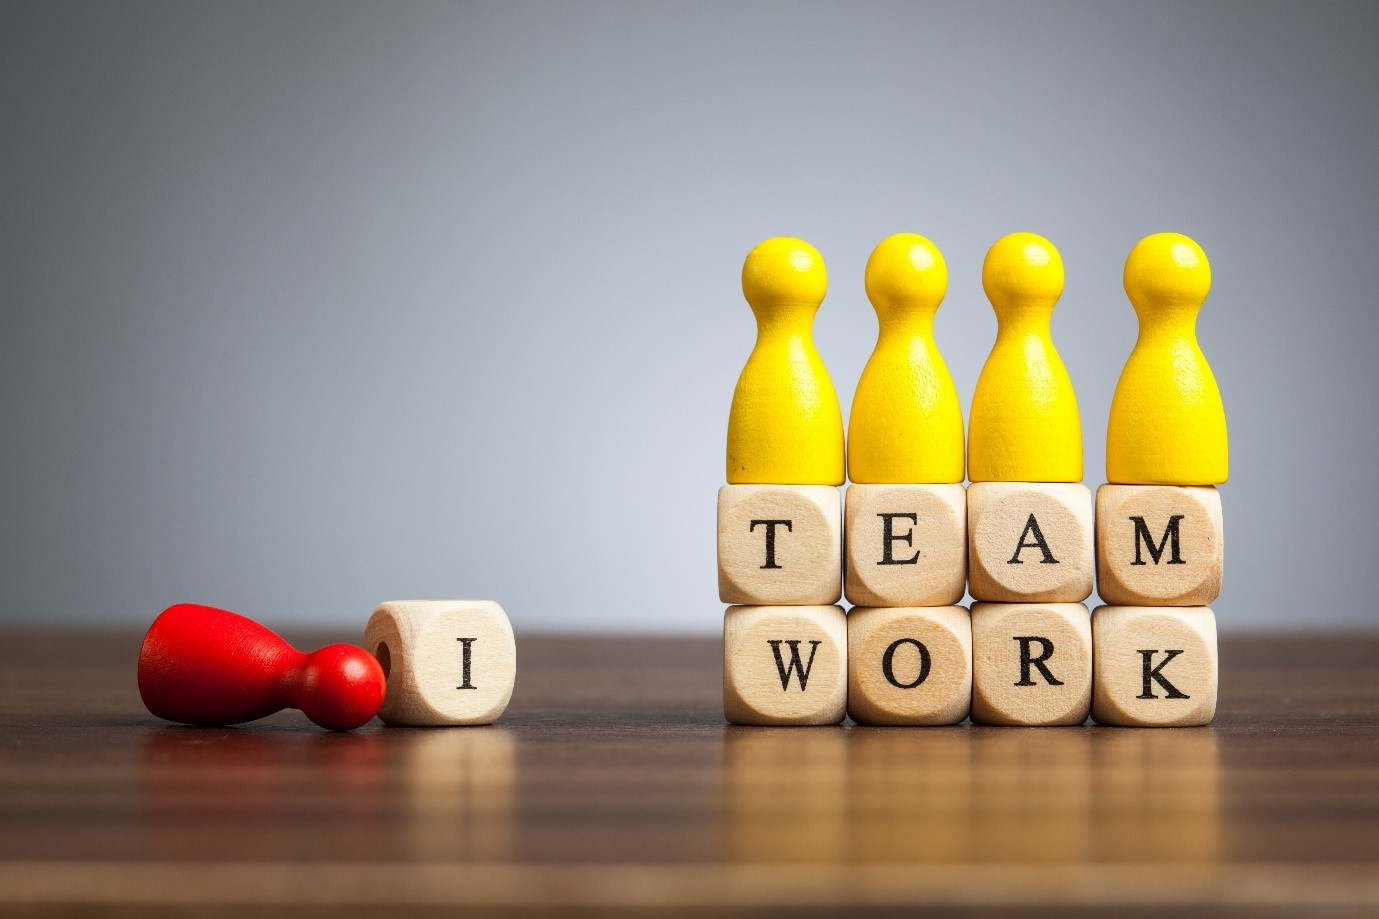 Team work and Leadership. No 'I' in Team.